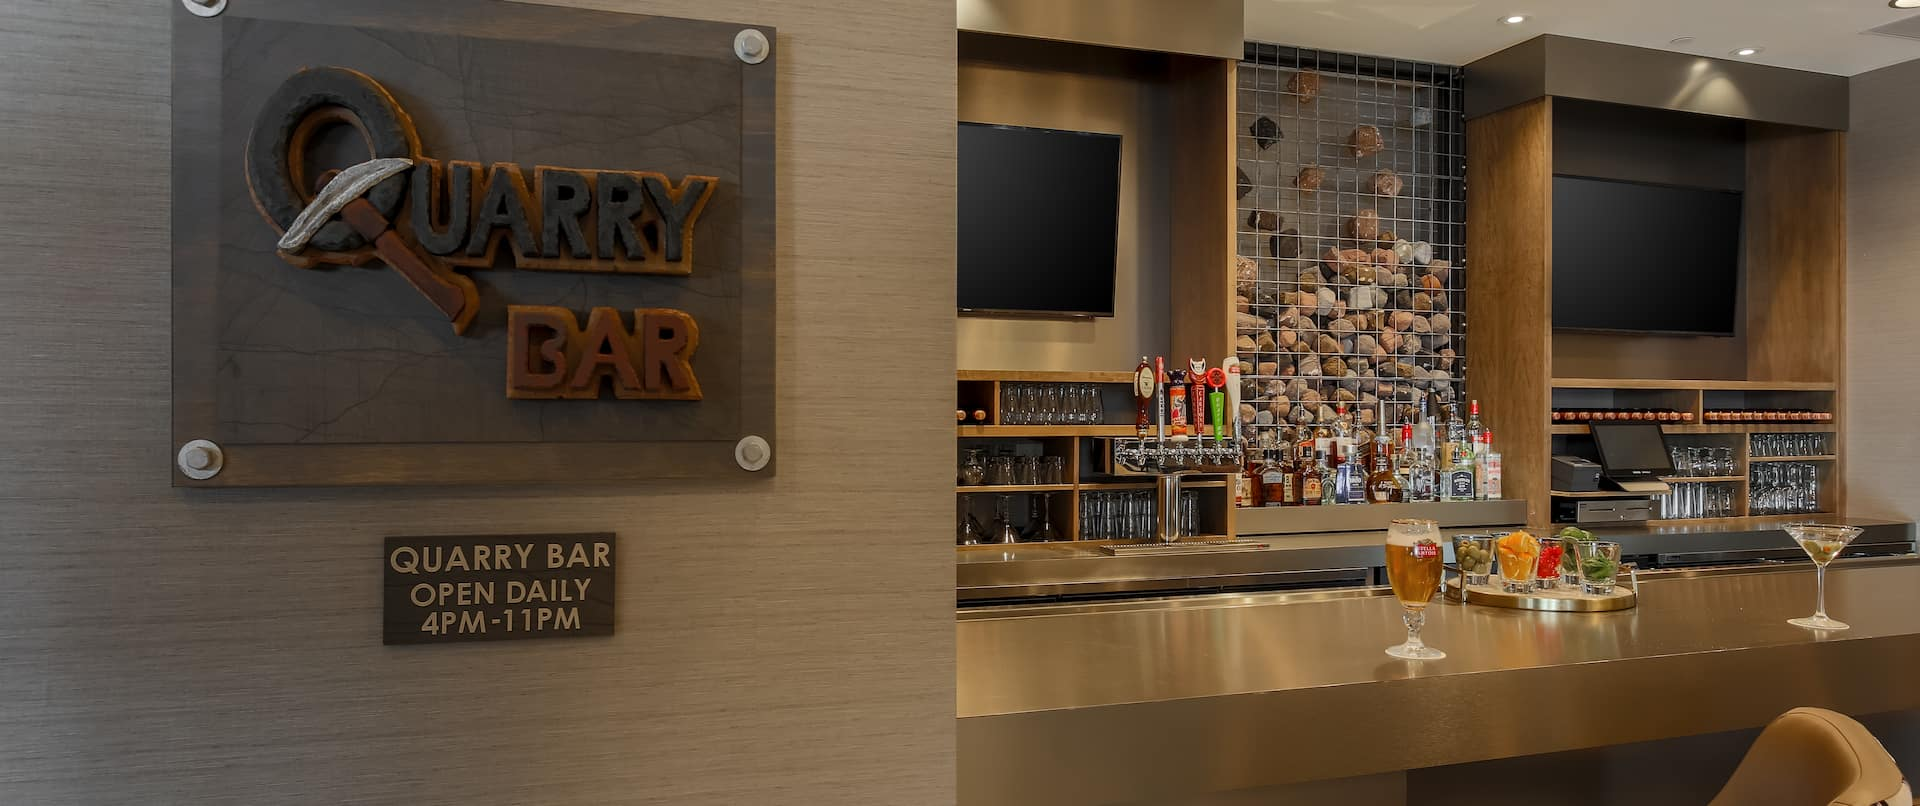 Detailed View of Quarry Bar and Hours of Operation Signage With View of TVs and Seating at Counter With Cocktails and Fully Stocked Bar